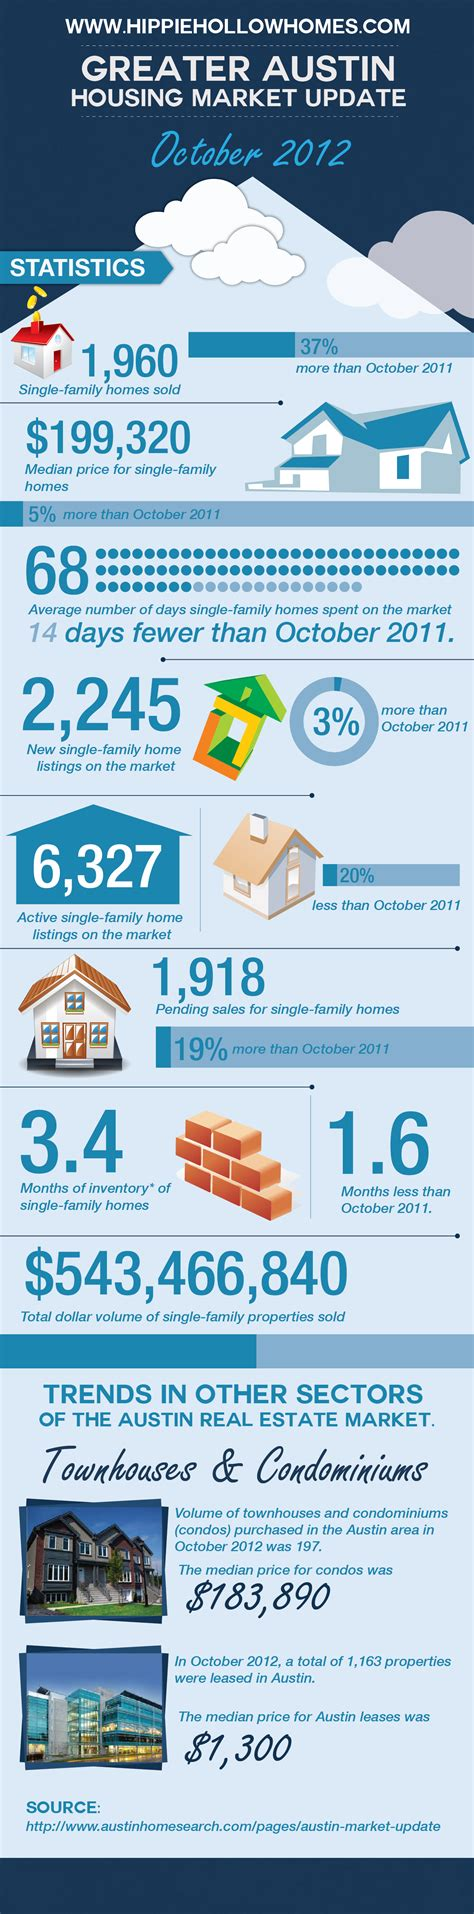 austin housing market greater austin housing market update october 2012 business infographics